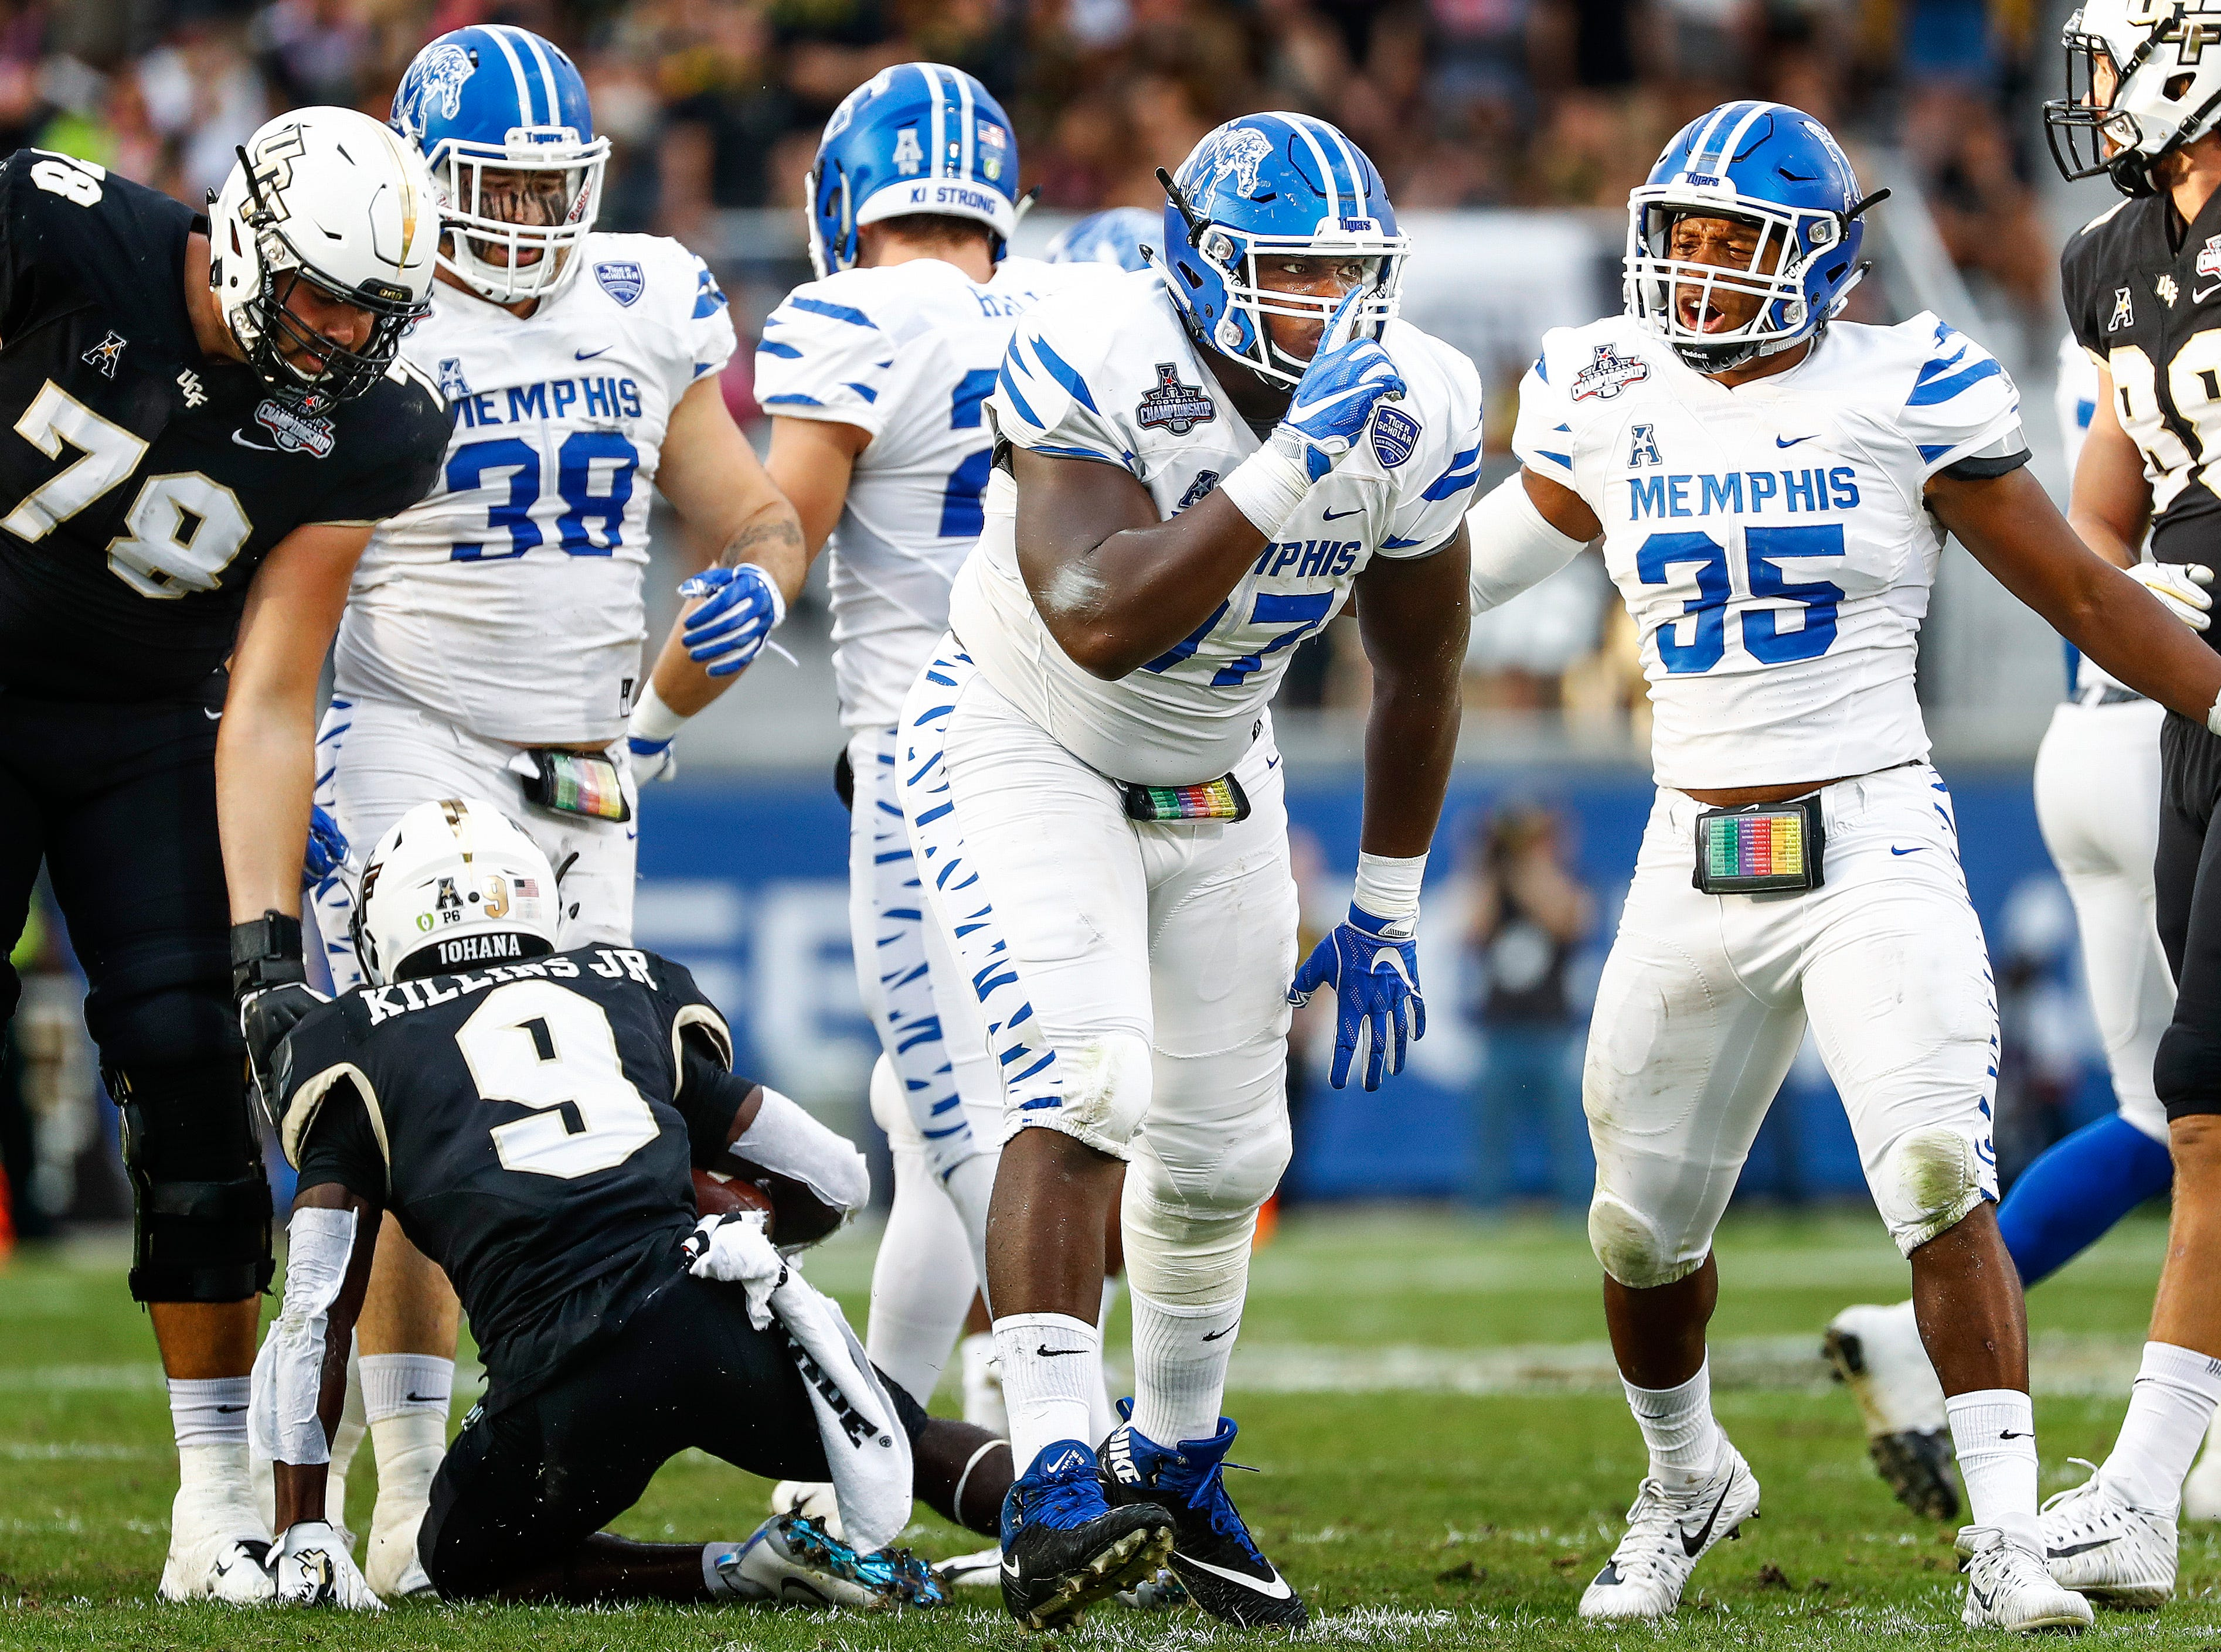 Memphis defender Emmanuel Cooper (middle) celebrates a tackle for a loss against UCF during action at the AAC Championship Football game Saturday, December 1, 2018 in Orlando.